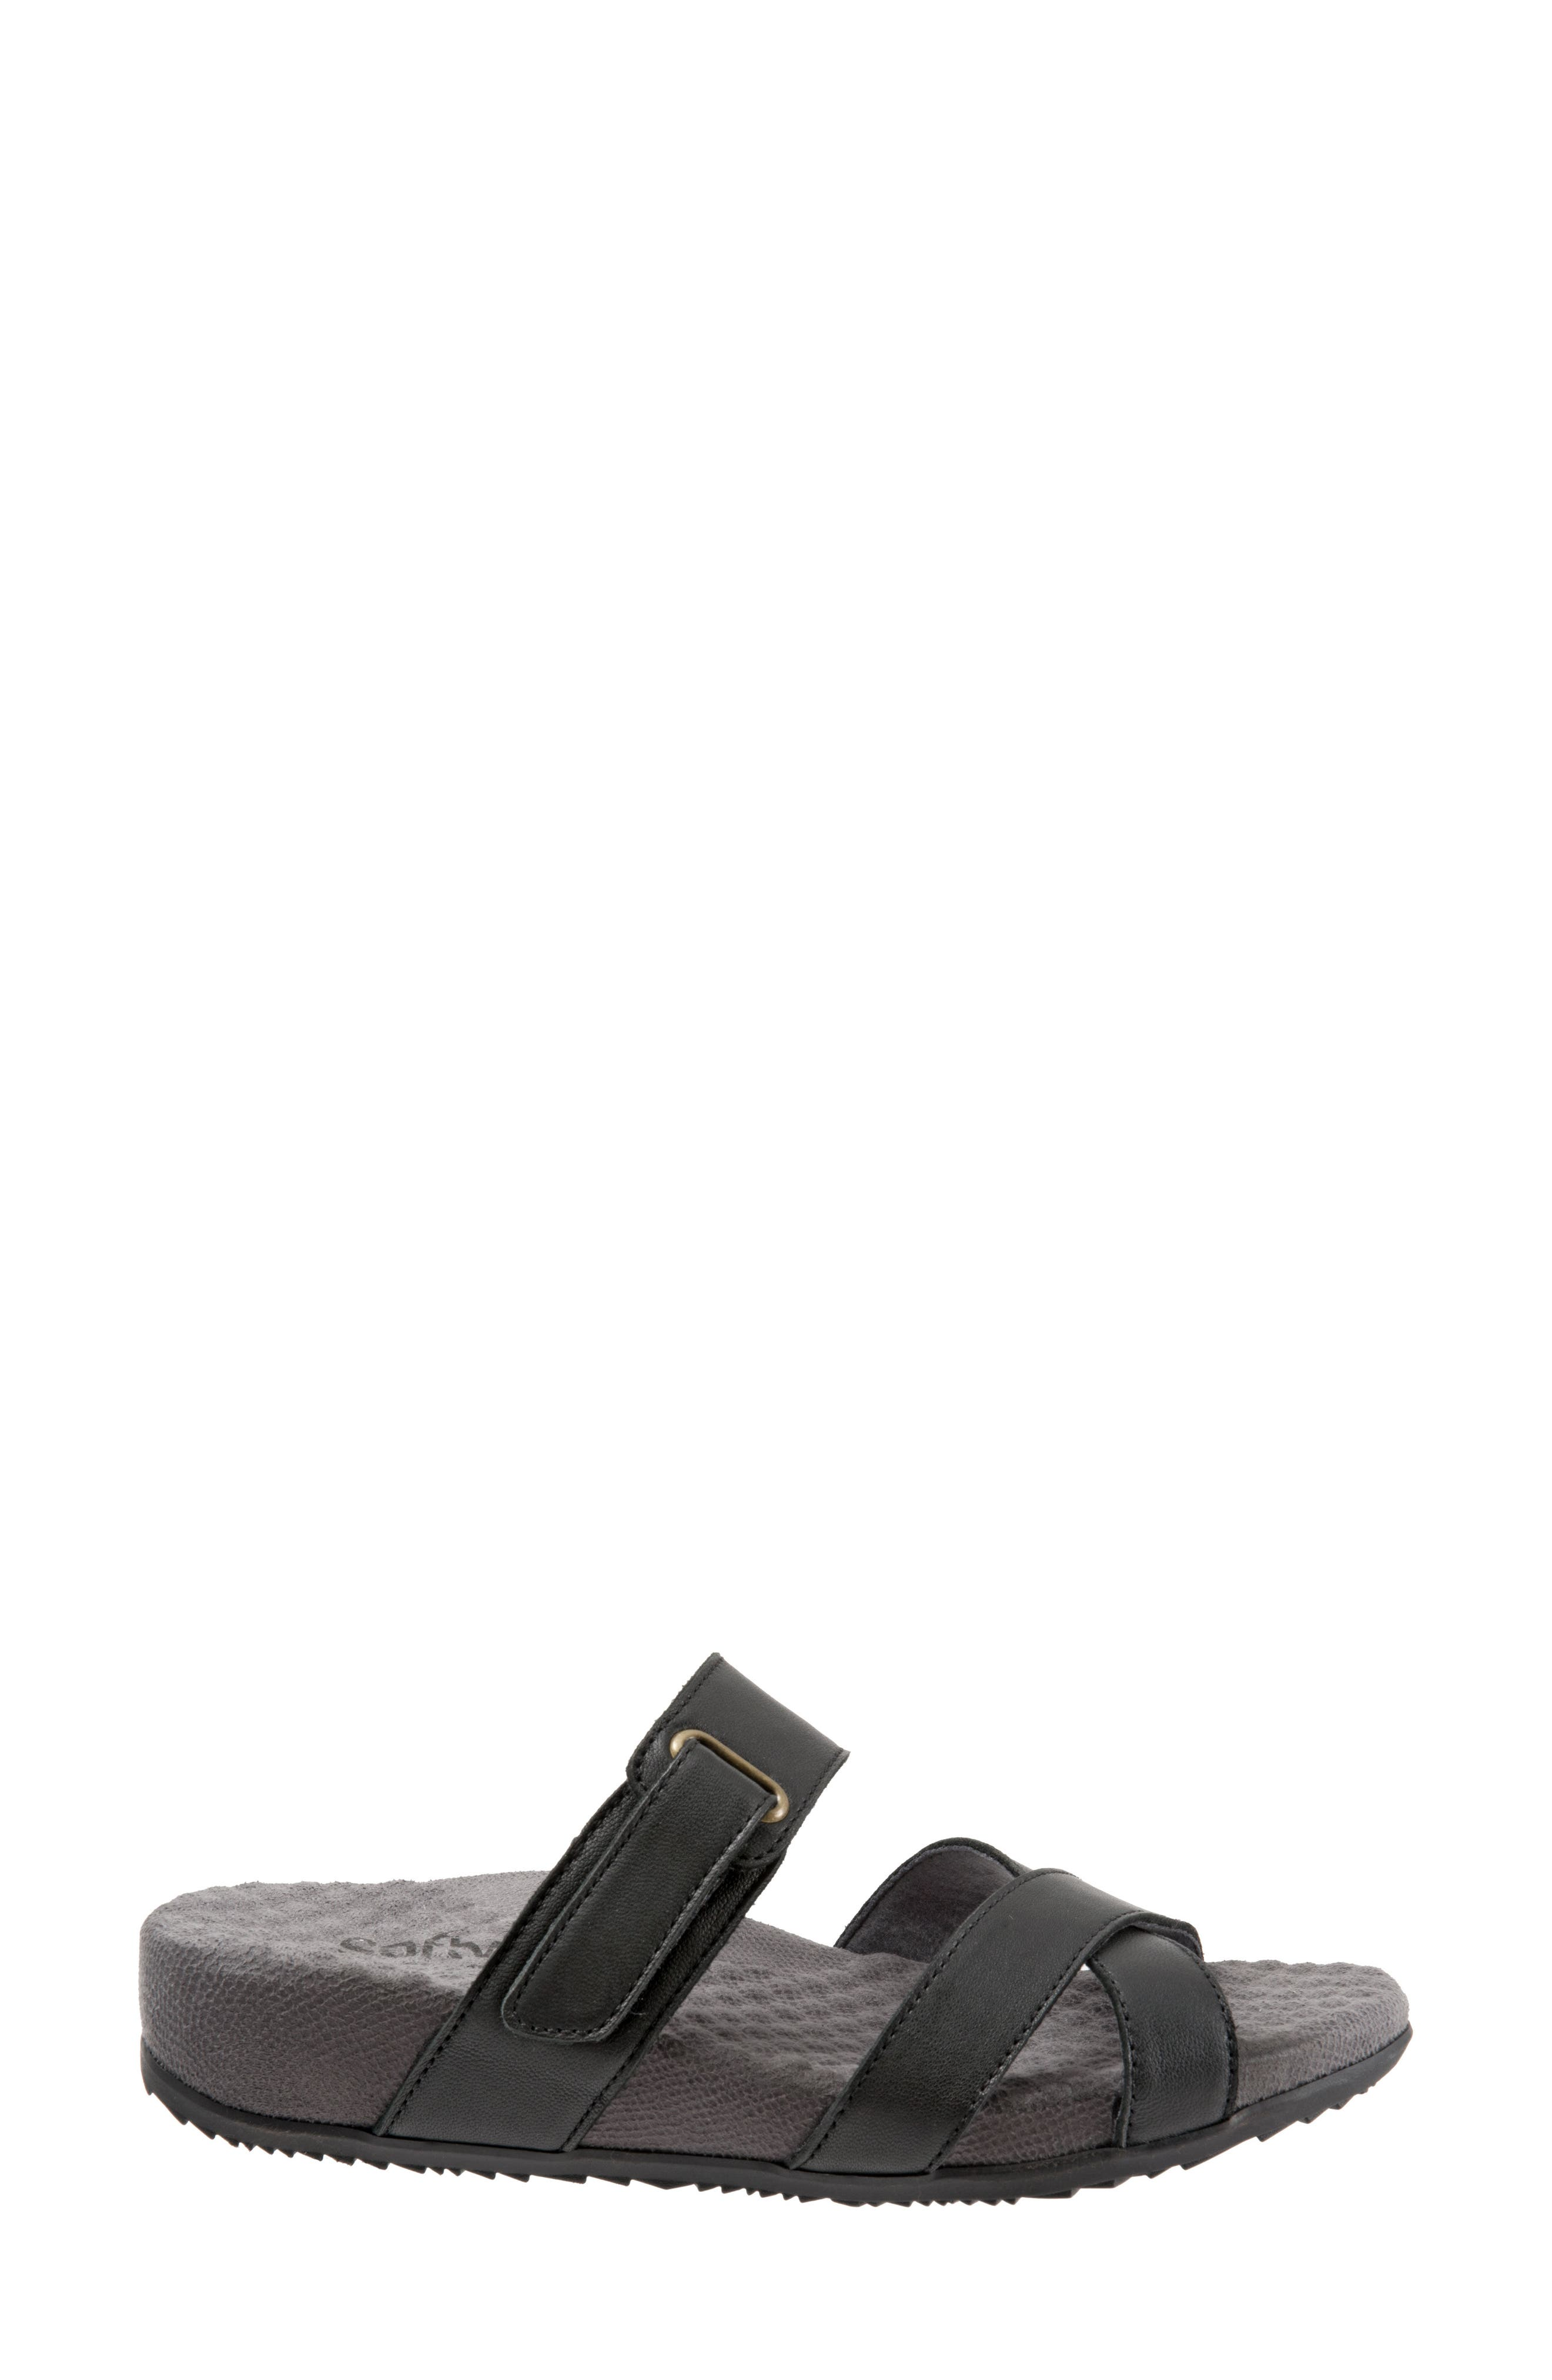 Brimley Sandal,                             Alternate thumbnail 6, color,                             Black Leather